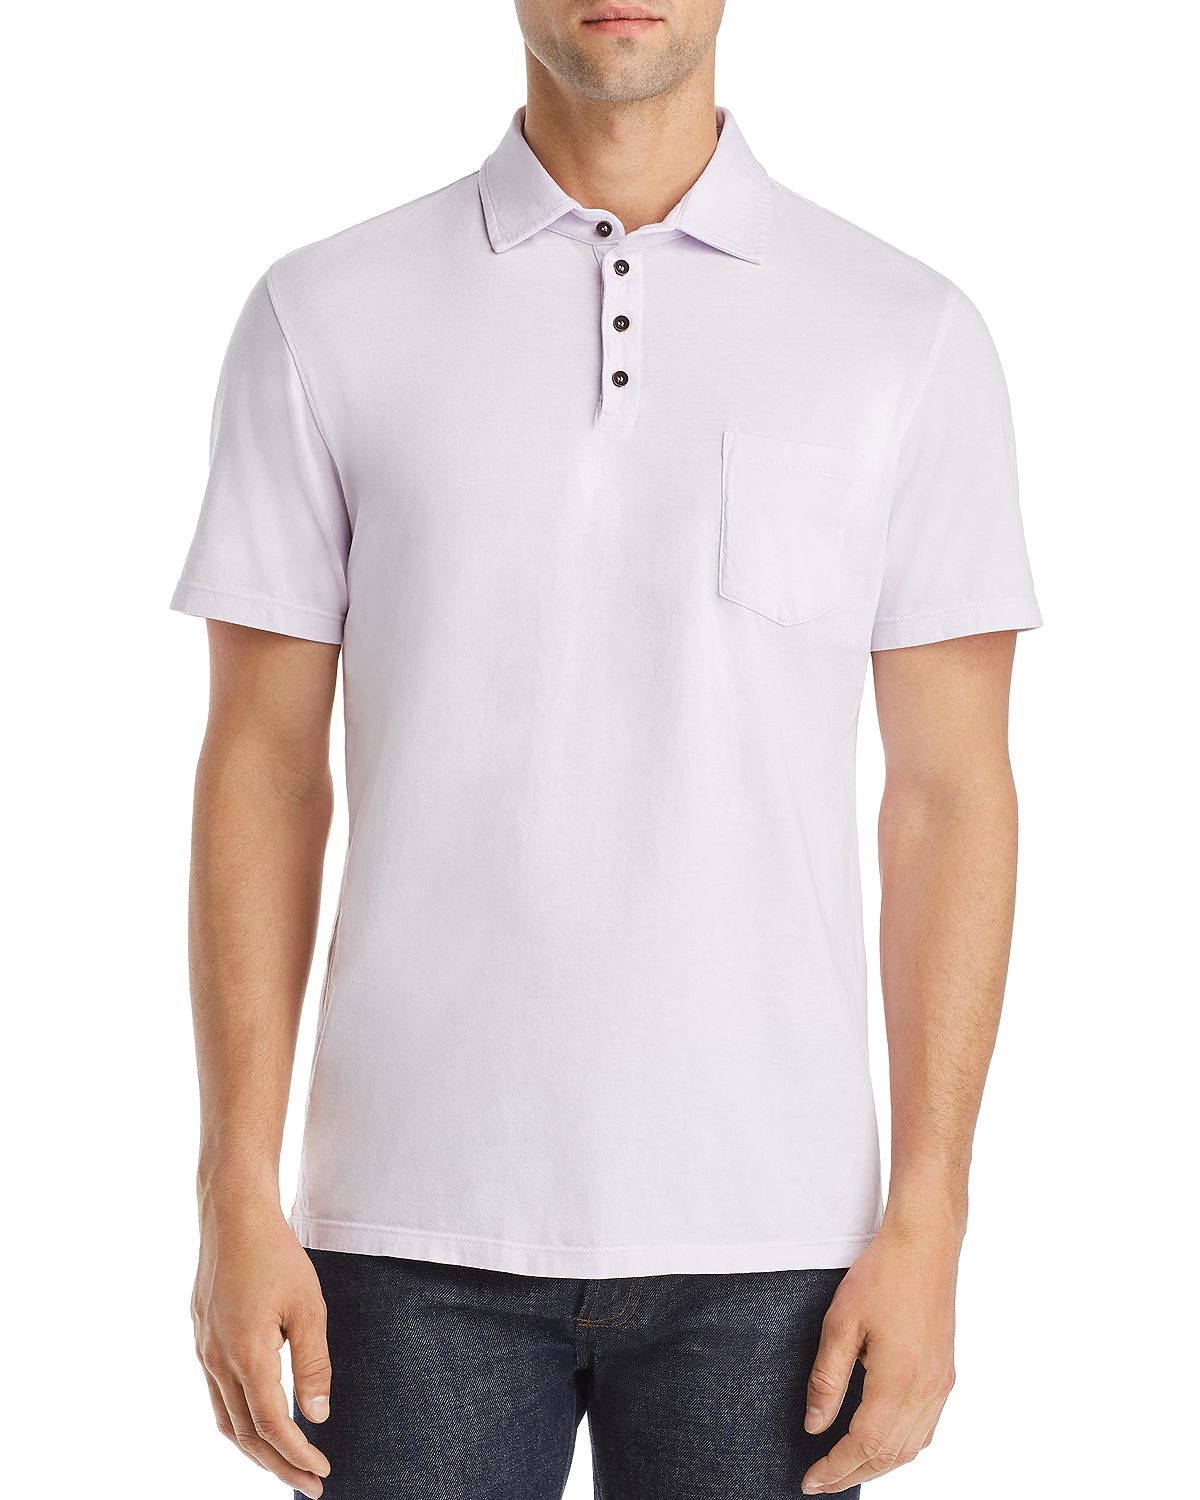 M Singer Polo Shirt Misty Lilac